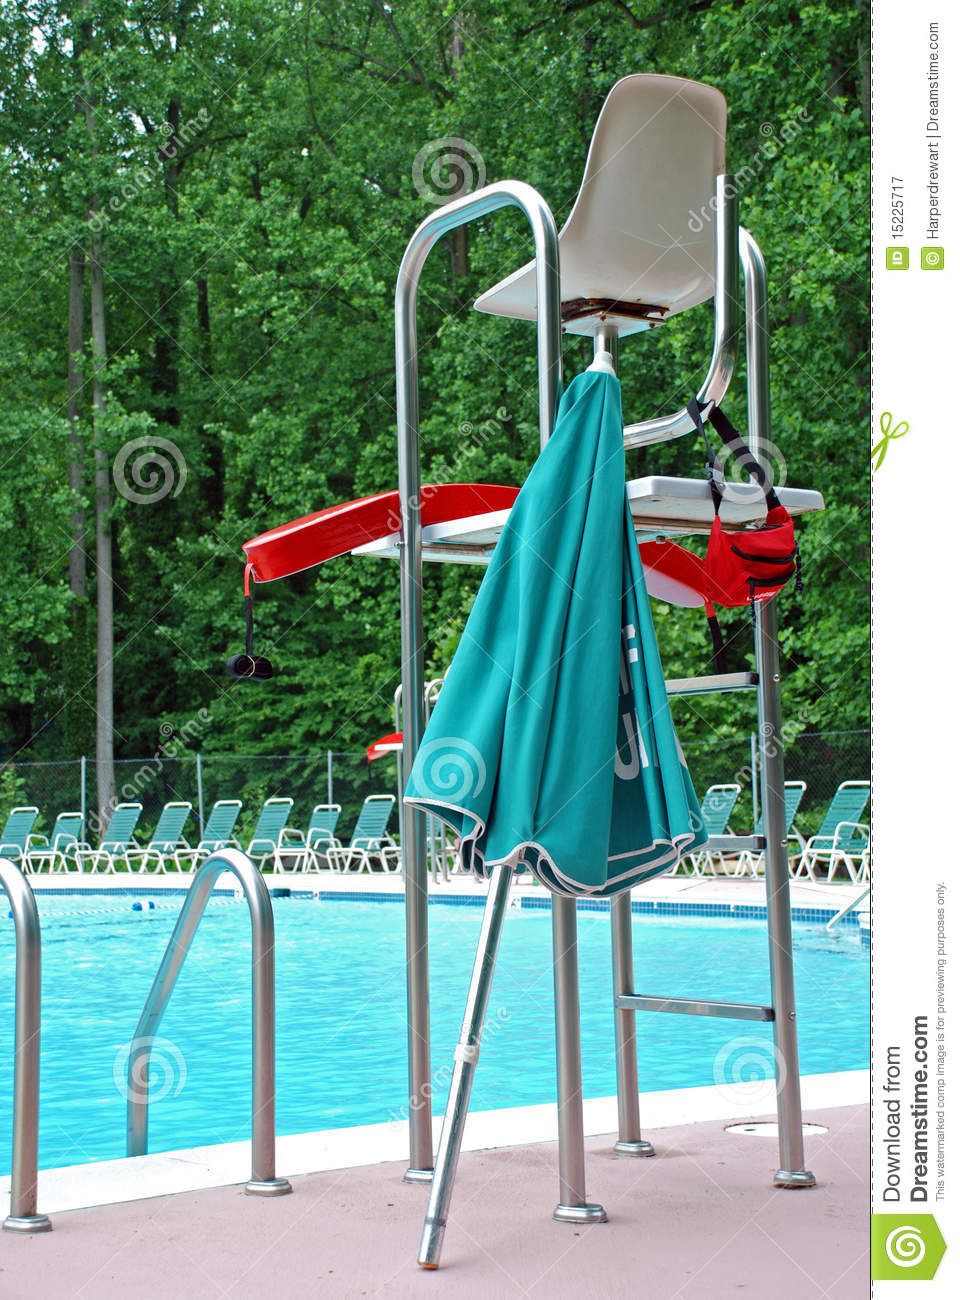 Lifeguard Stand Royalty Free Stock Photography Image